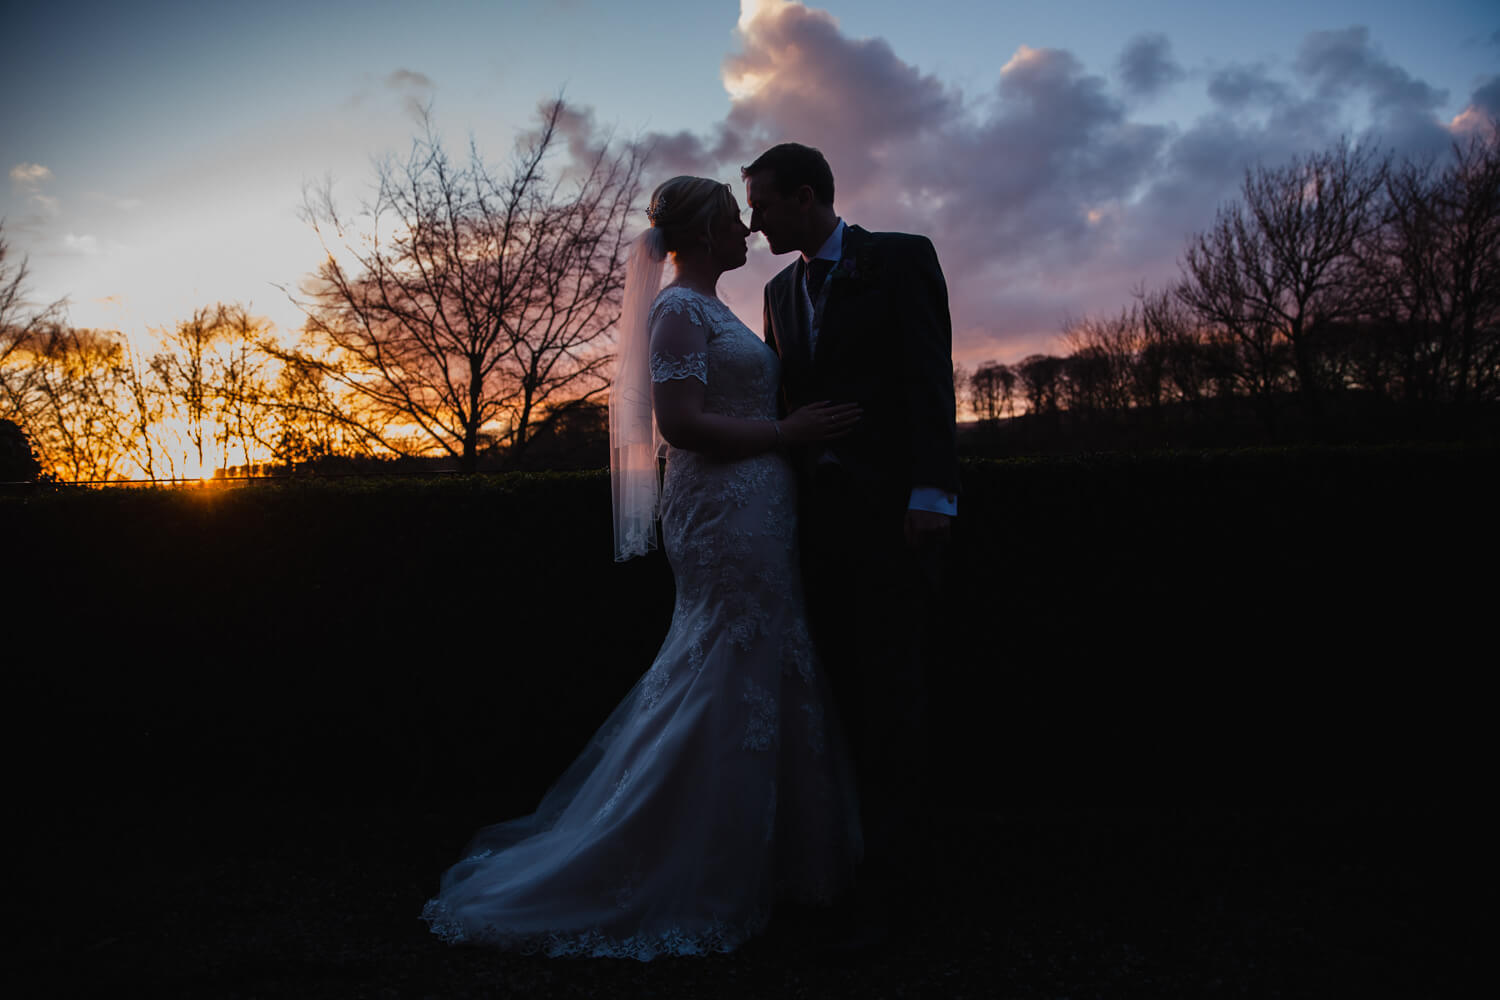 low light exposure silhouette portrait of newly married couple in sunset backdrop